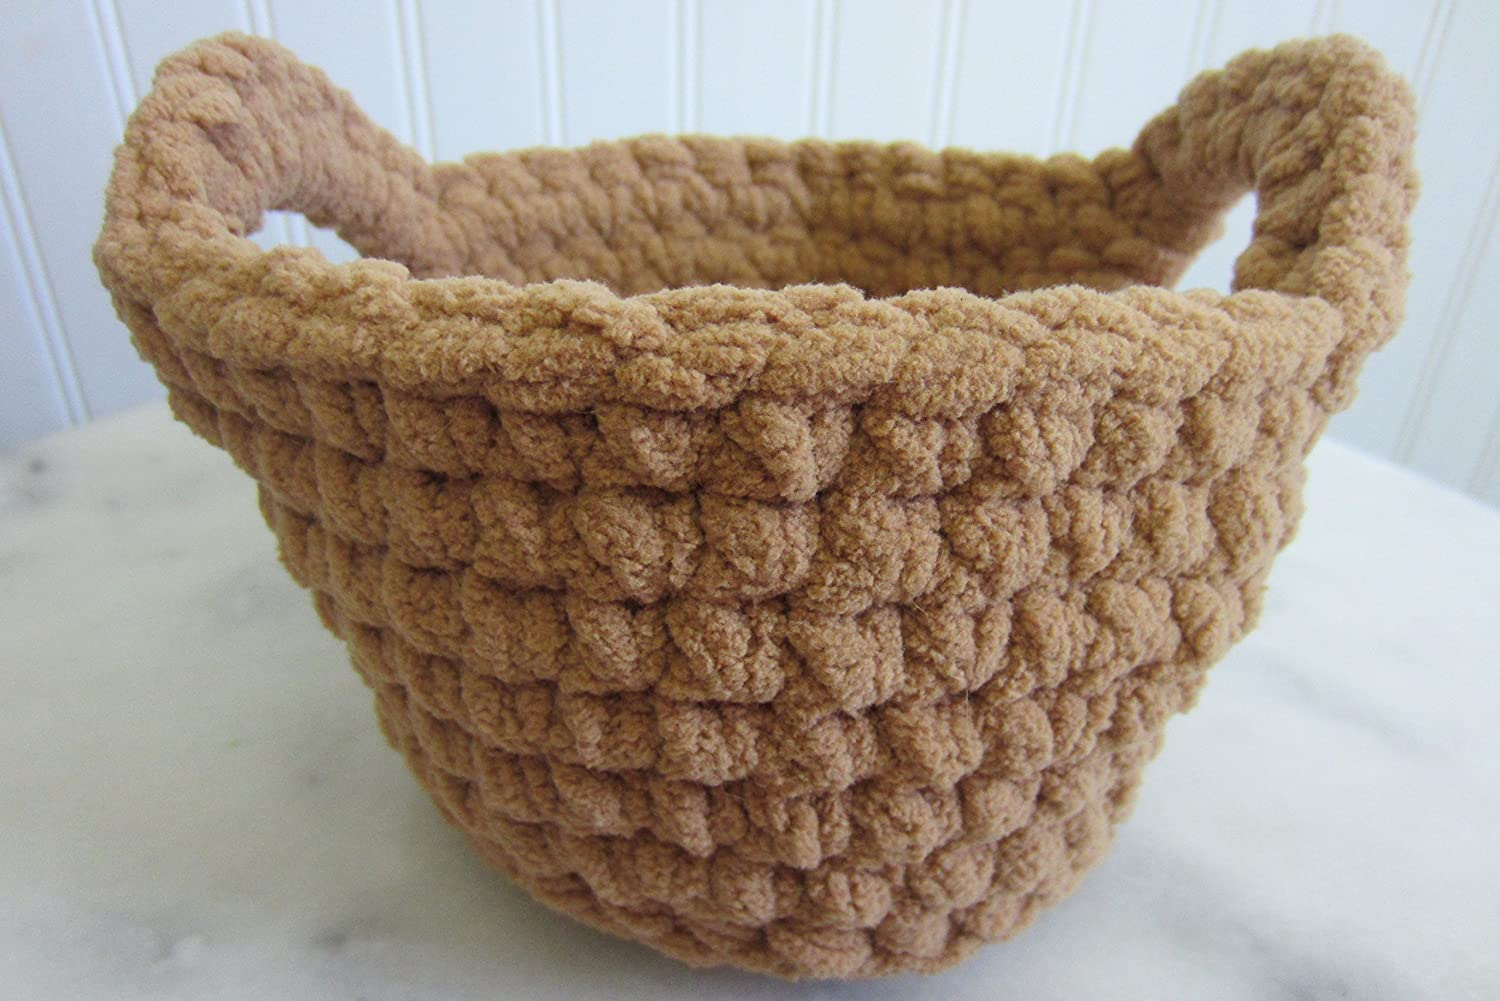 B0168TC32E Small Round Basket with Handles - Many Color Choices 91jLe6OwSYL